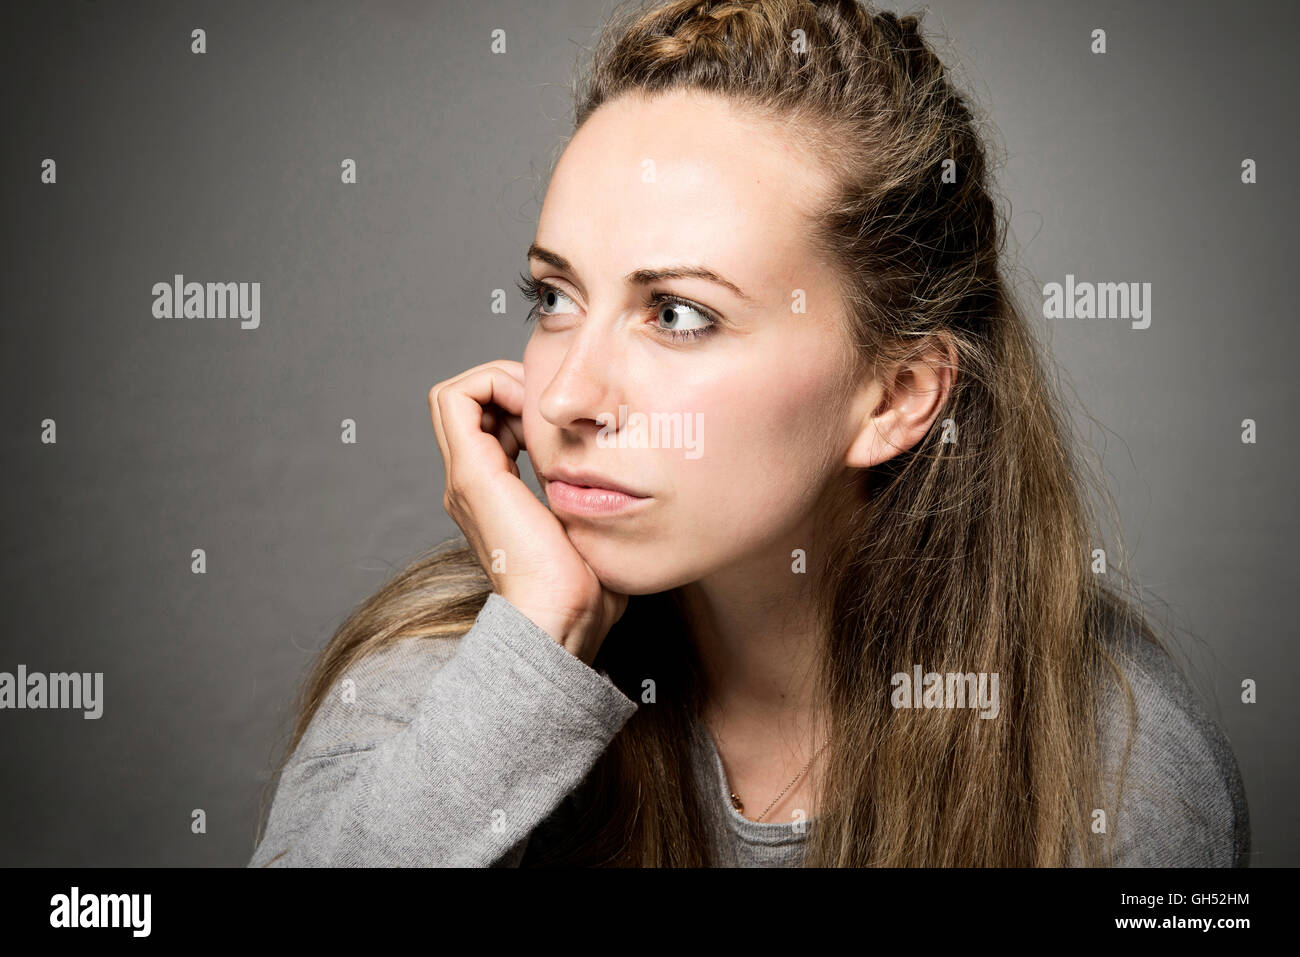 Young woman close up looking sorrowful, sad, thoughtful hand on chin looking in to the distance - Stock Image